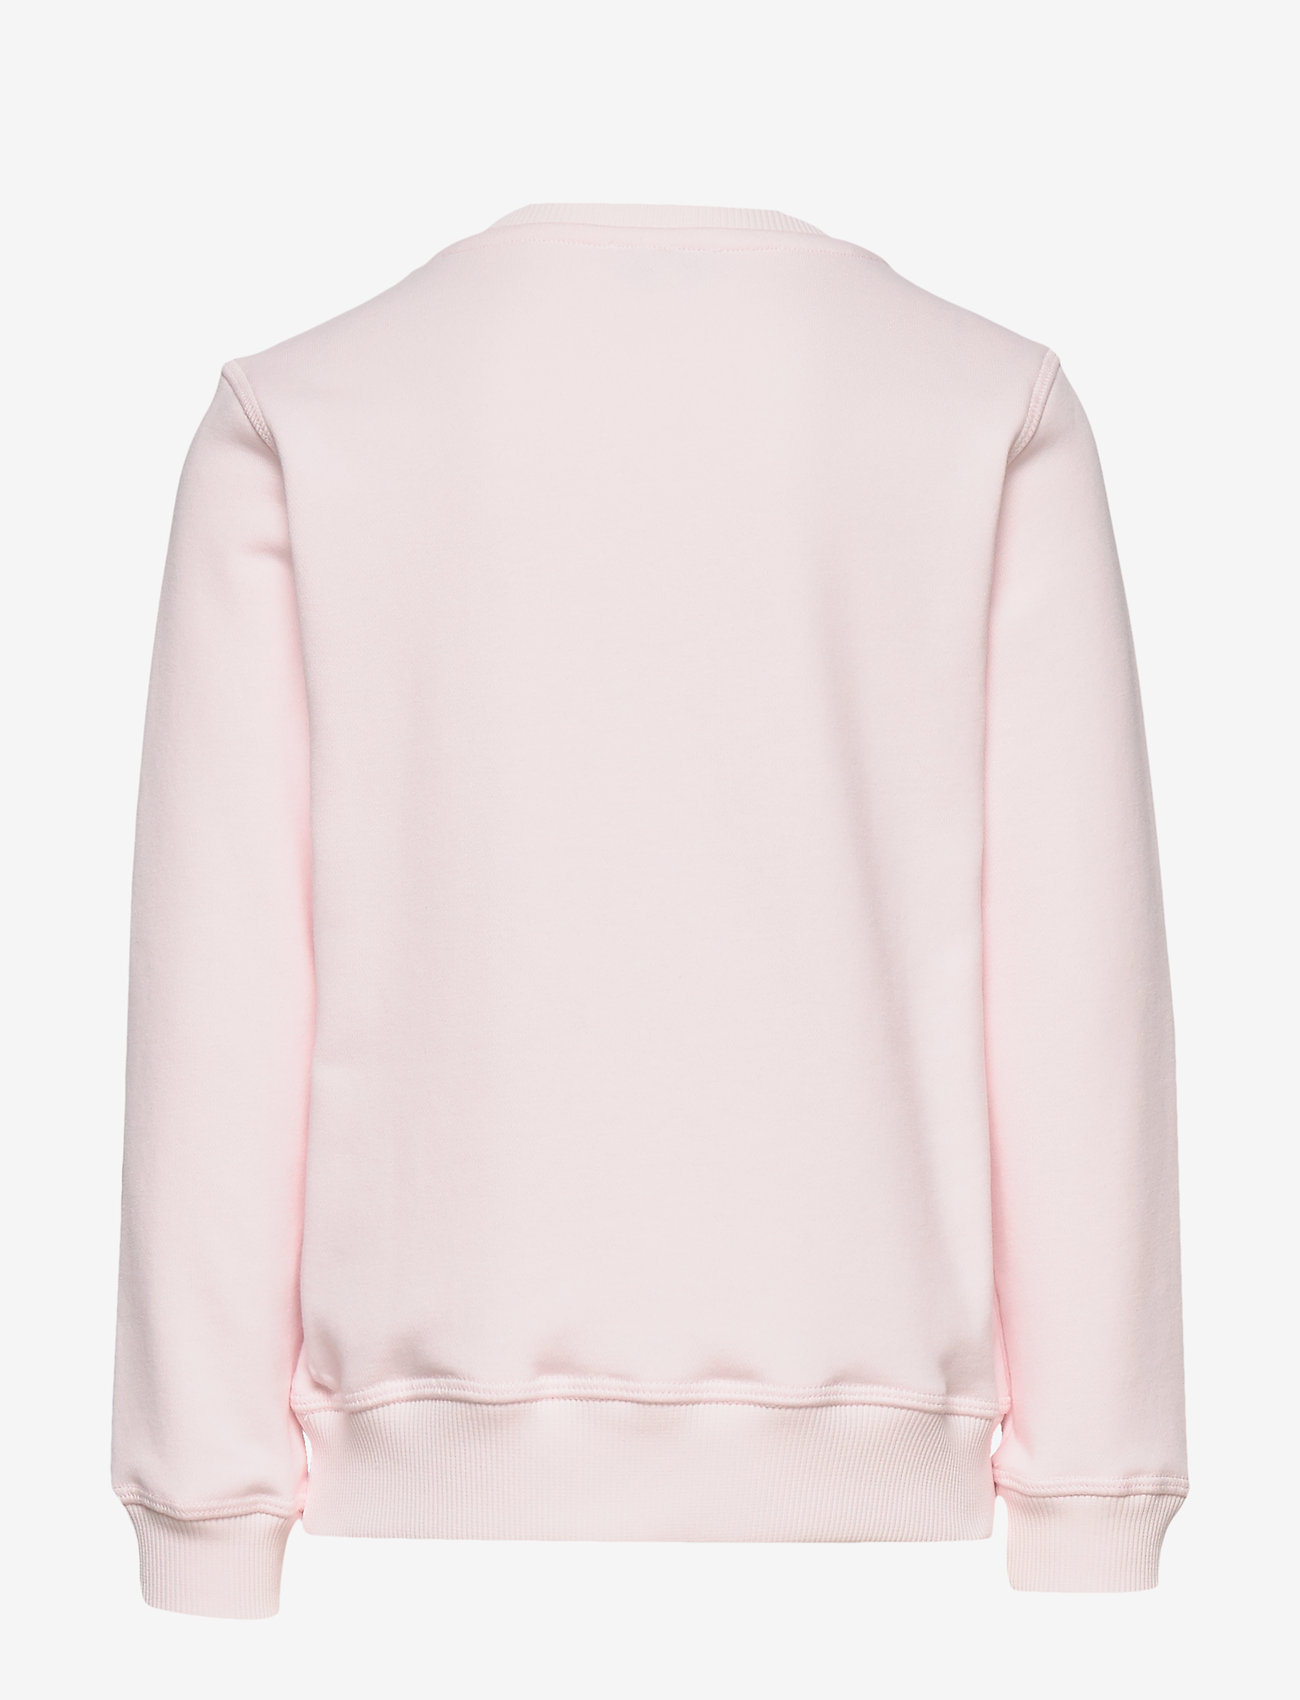 Kenzo - TIGER JG 8 - sweatshirts - light pink - 1